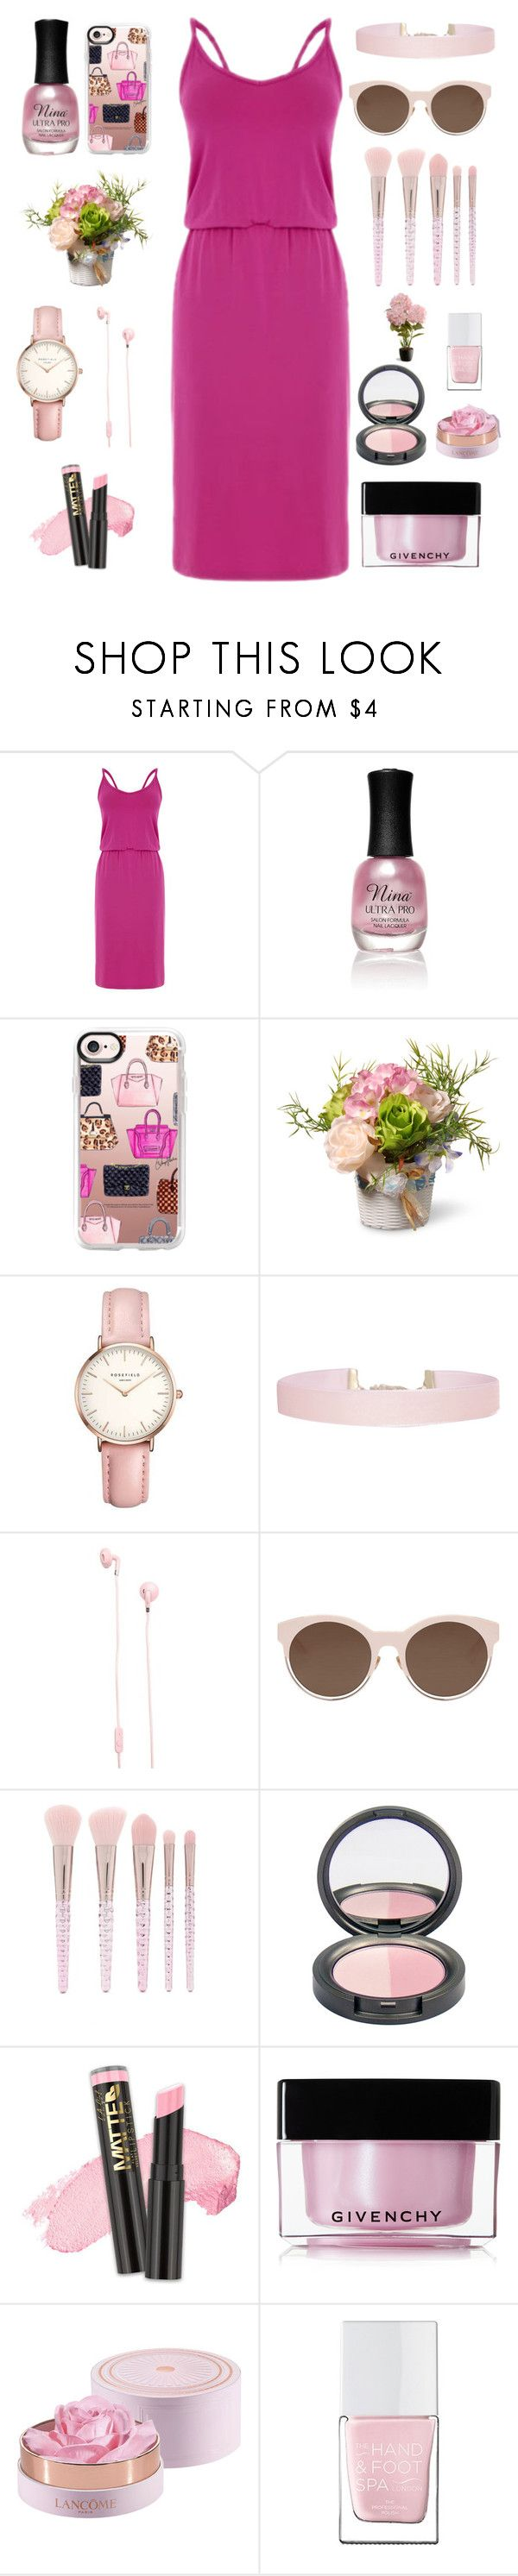 """Easter  set"" by im-karla-with-a-k ❤ liked on Polyvore featuring Warehouse, Charlotte Russe, Casetify, National Tree Company, Topshop, Humble Chic, Urbanears, Christian Dior, Forever 21 and L.A. Girl"